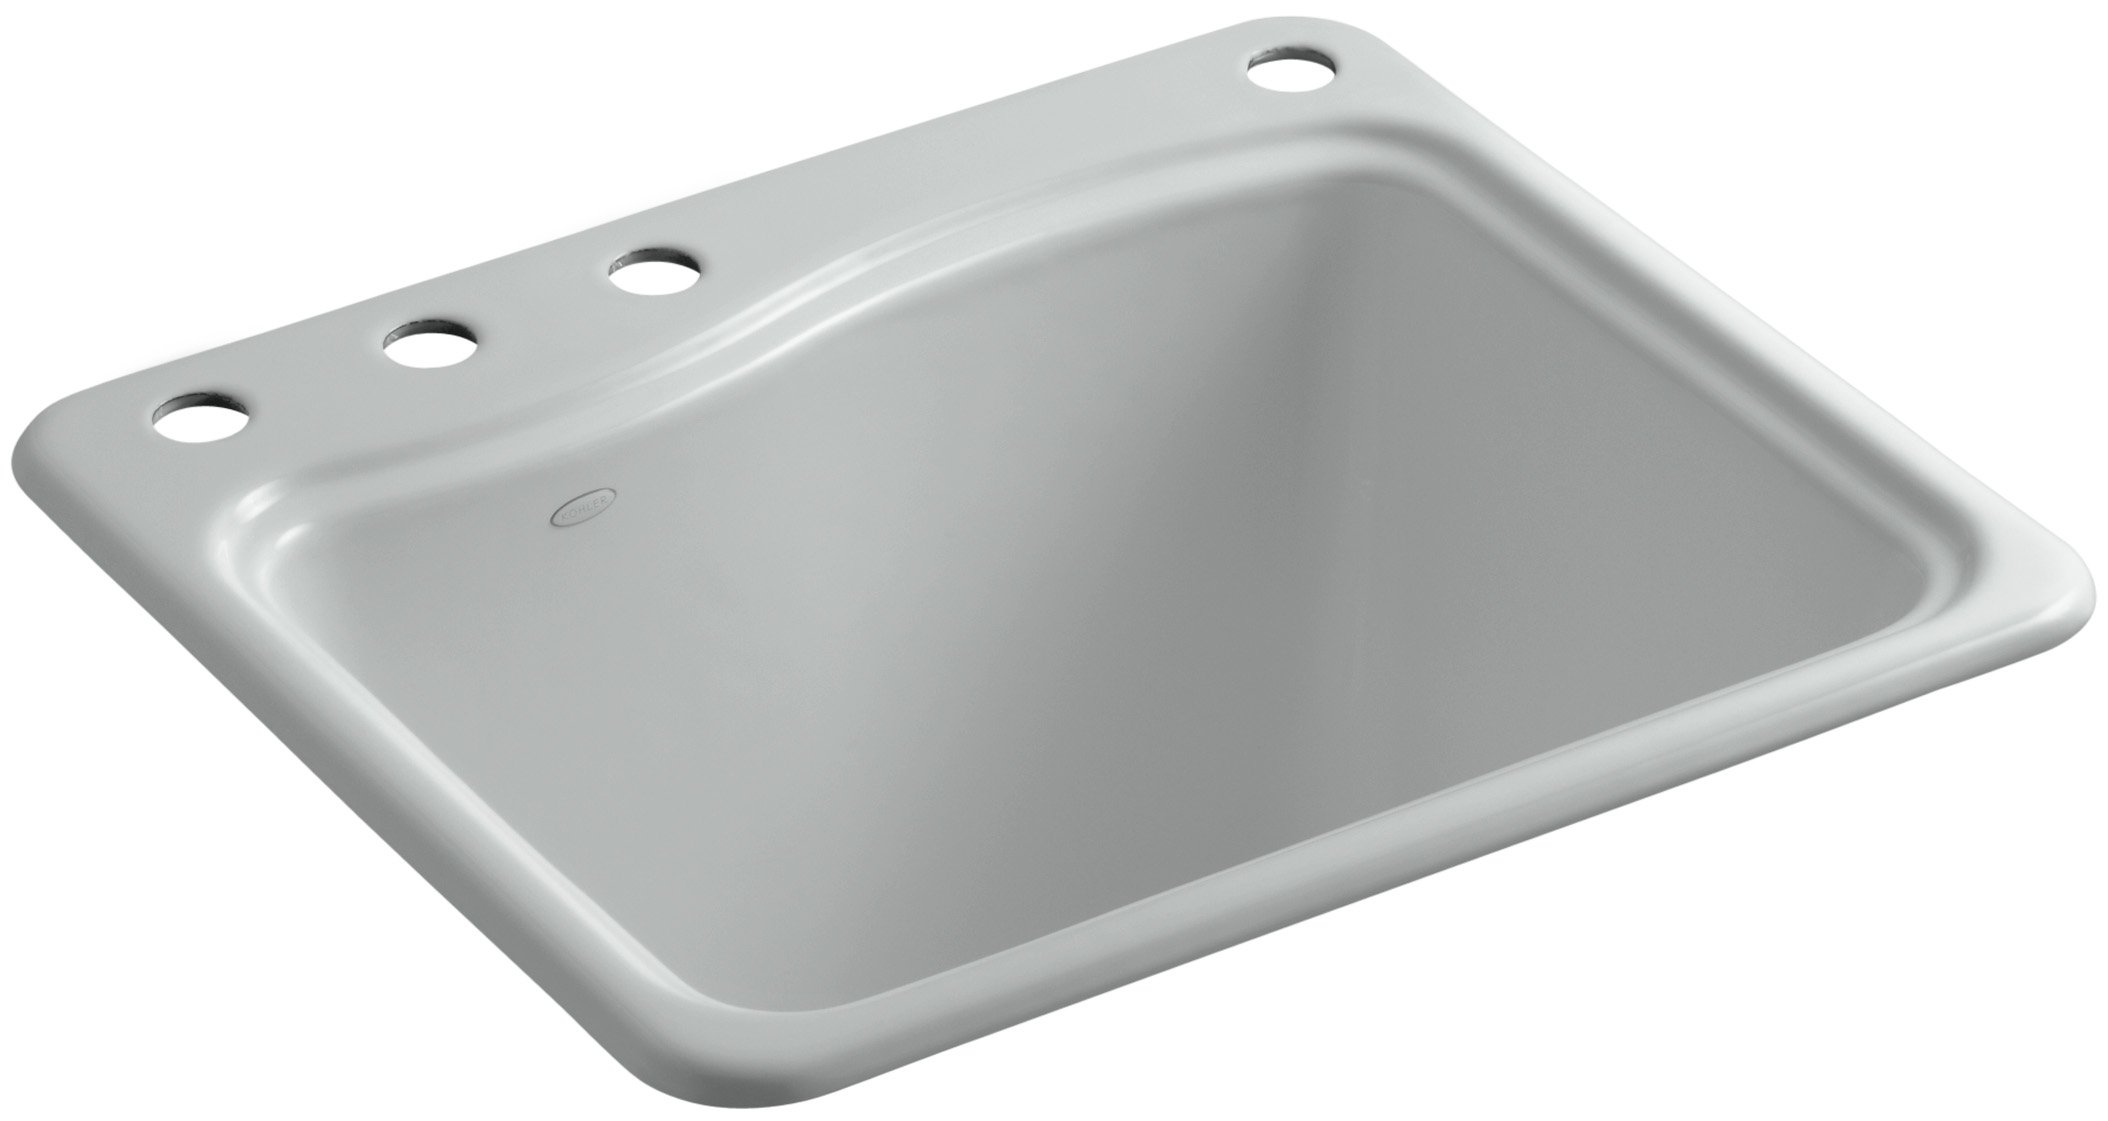 Kohler K-6657-4-95 River Falls Self-Rimming Sink with Three-Hole Faucet Drilling, Ice Grey